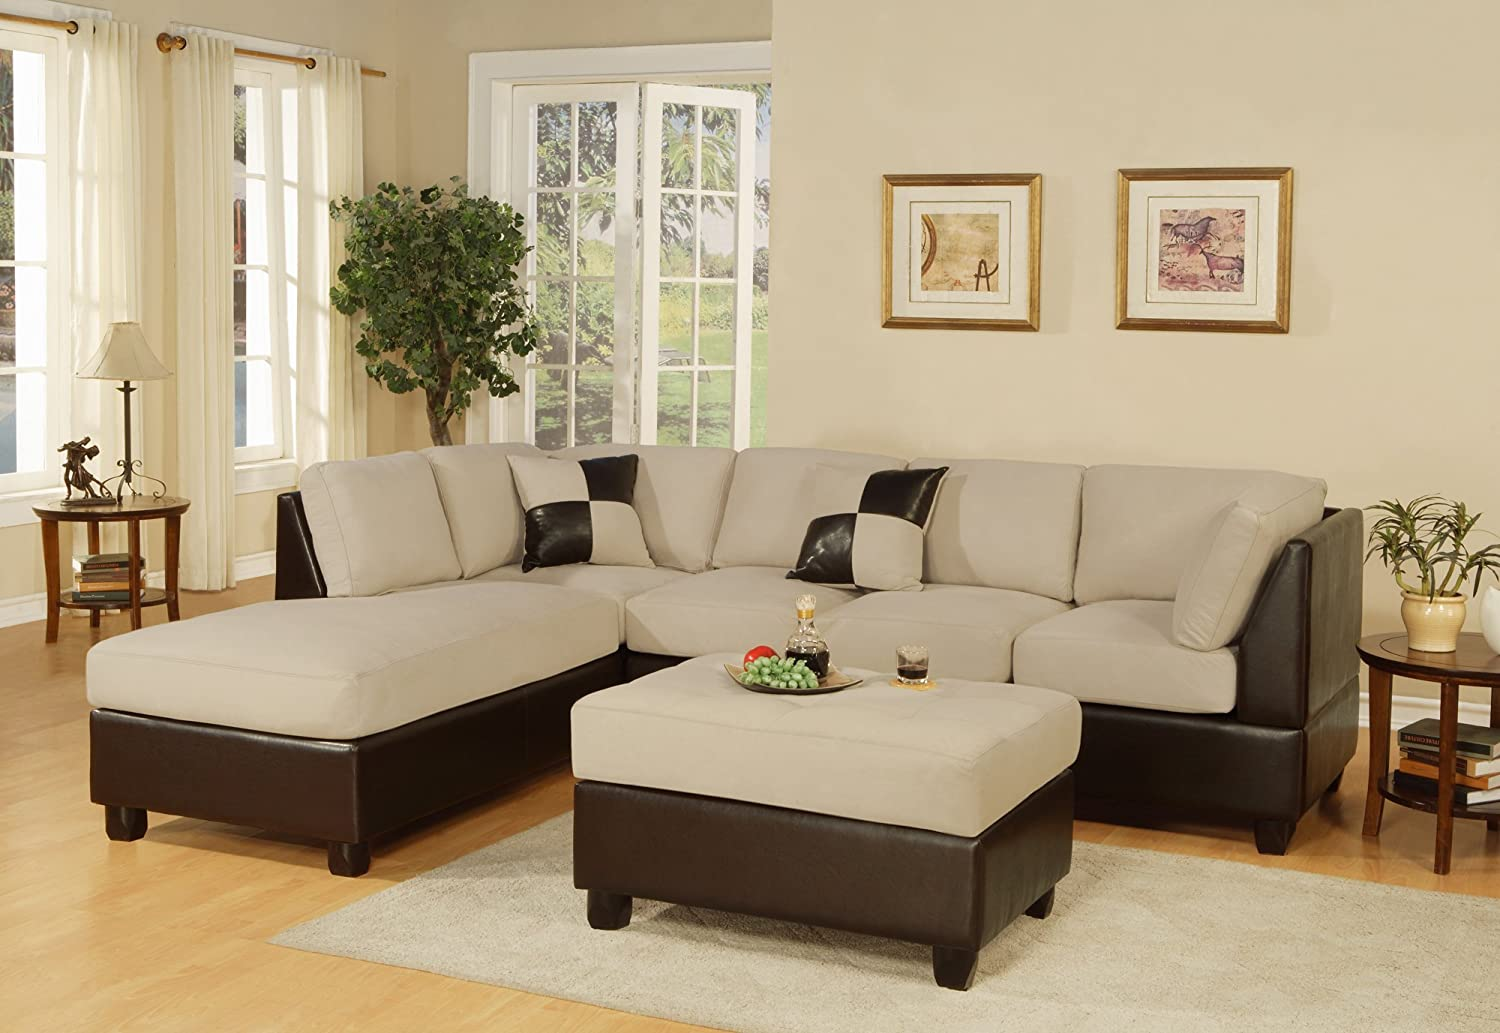 Amazon com  Bobkona Hungtinton Microfiber Faux Leather 3 Piece Sectional  Sofa Set  Mushroom  Kitchen   DiningAmazon com  Bobkona Hungtinton Microfiber Faux Leather 3 Piece  . Discount Living Rooms. Home Design Ideas